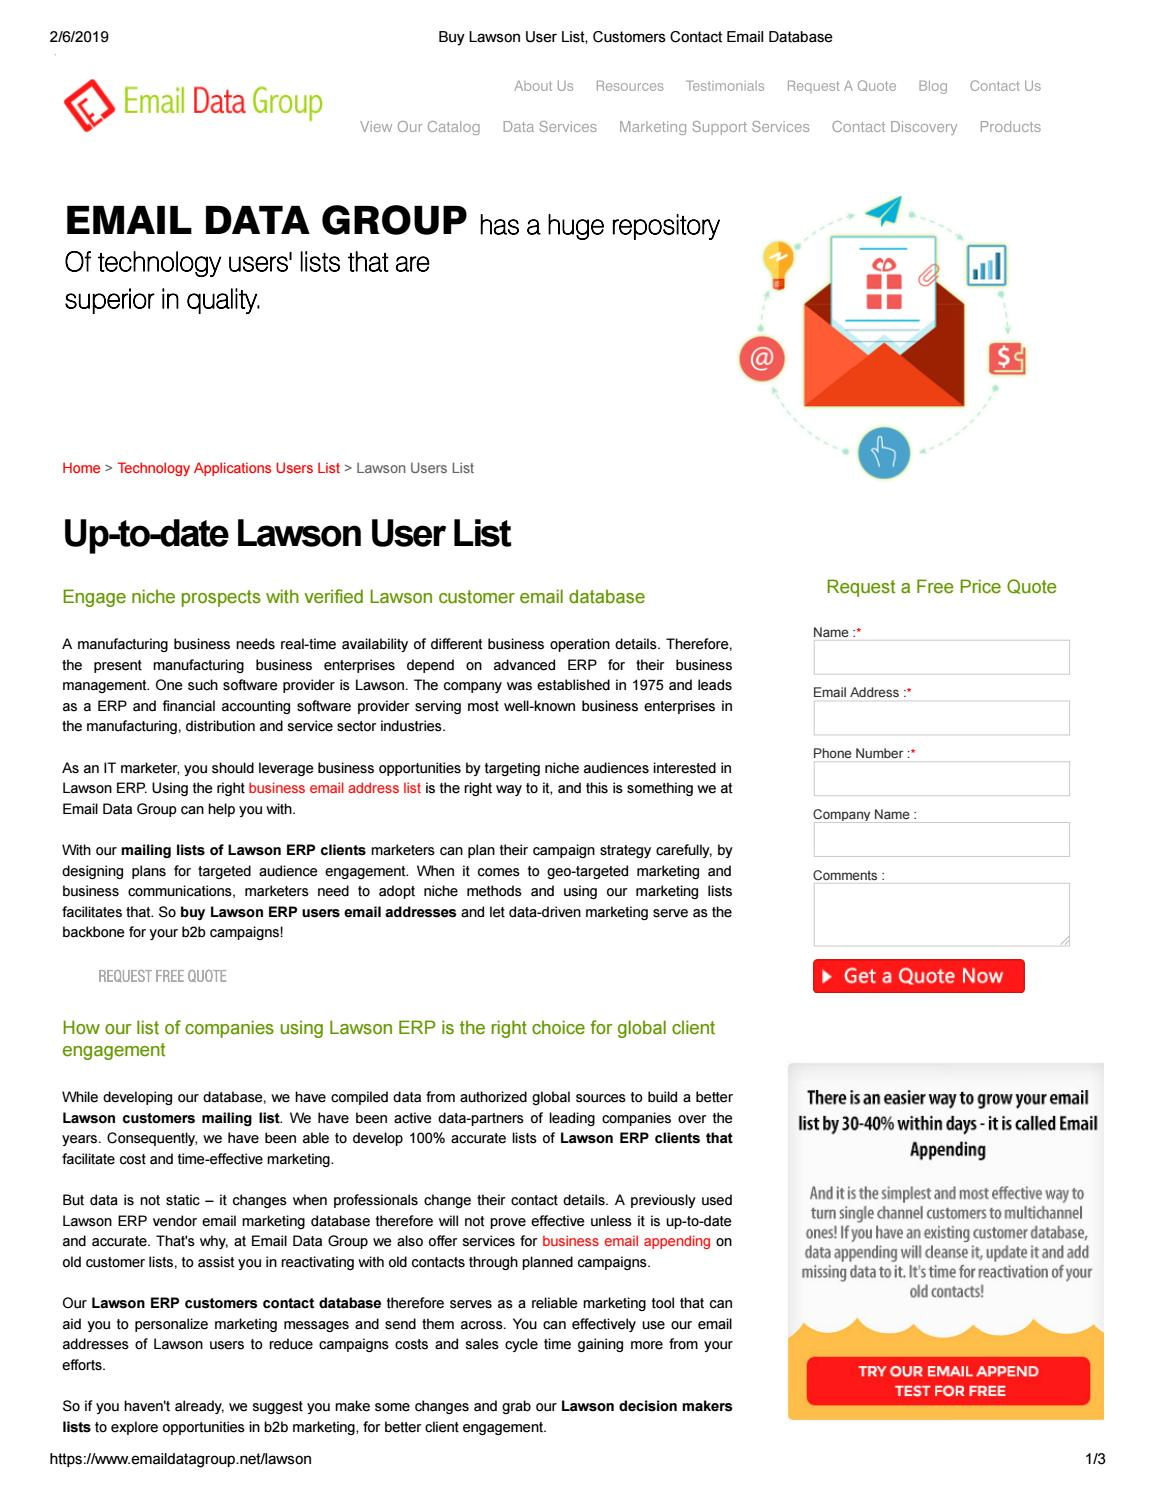 Lawson User Email Addresses - Email Data Group by